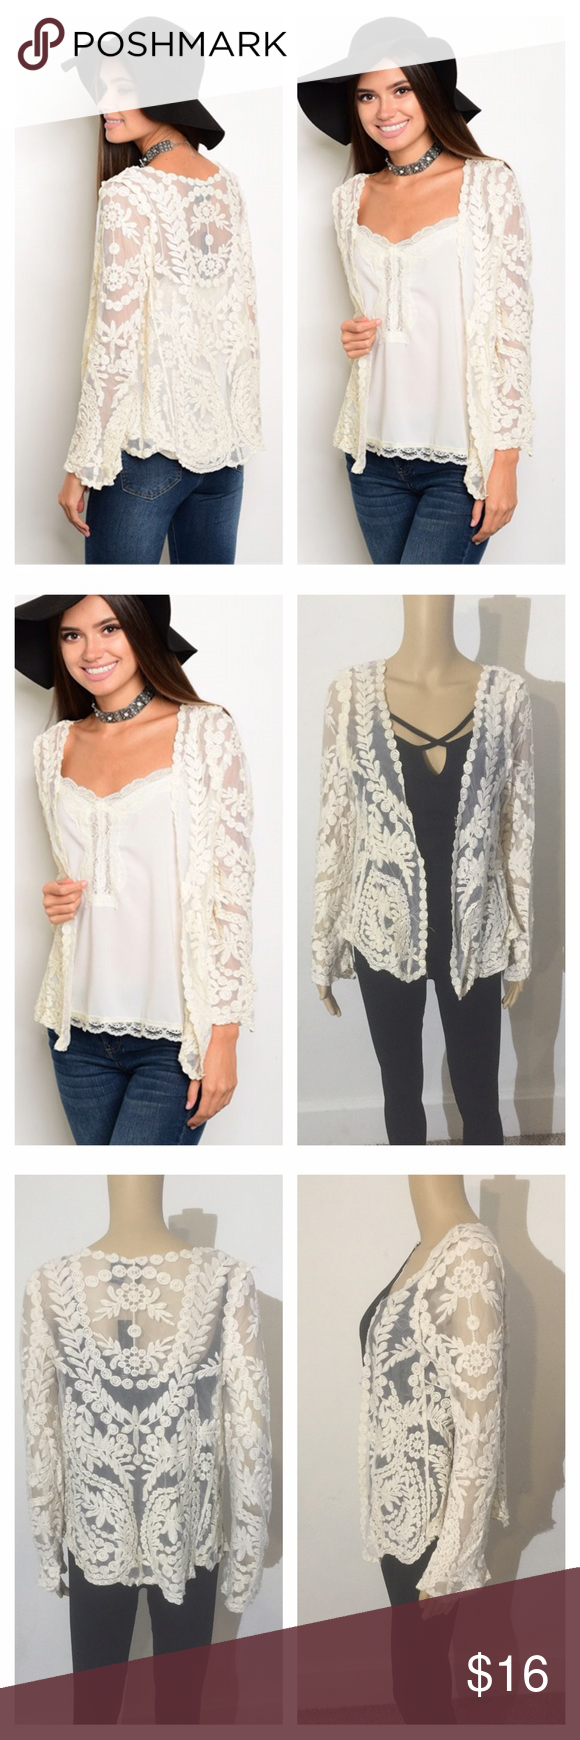 NWT last medium Ivory Crochet Lace Cardigan Boutique | Front lace ...